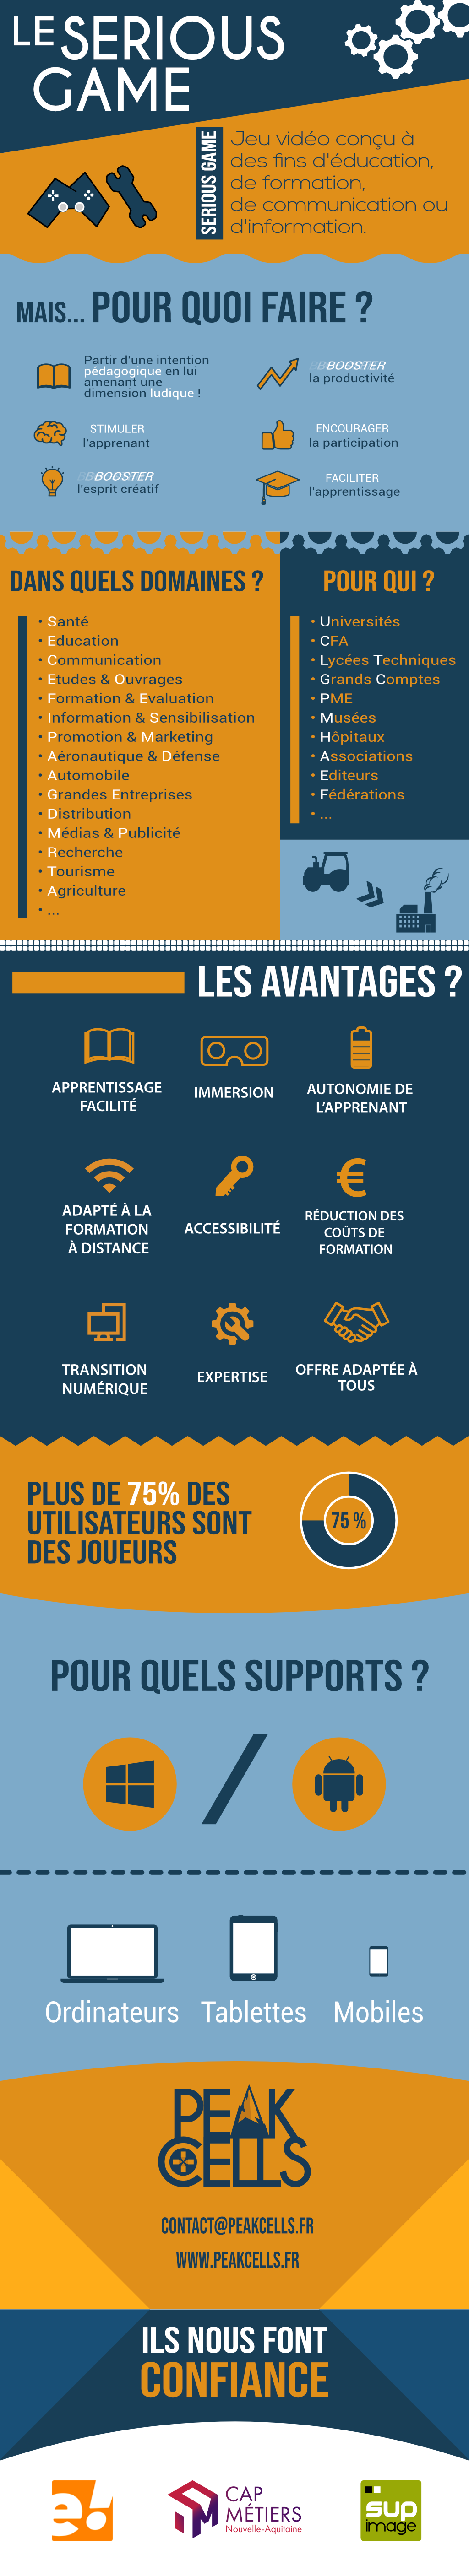 Serious Game - Infographie